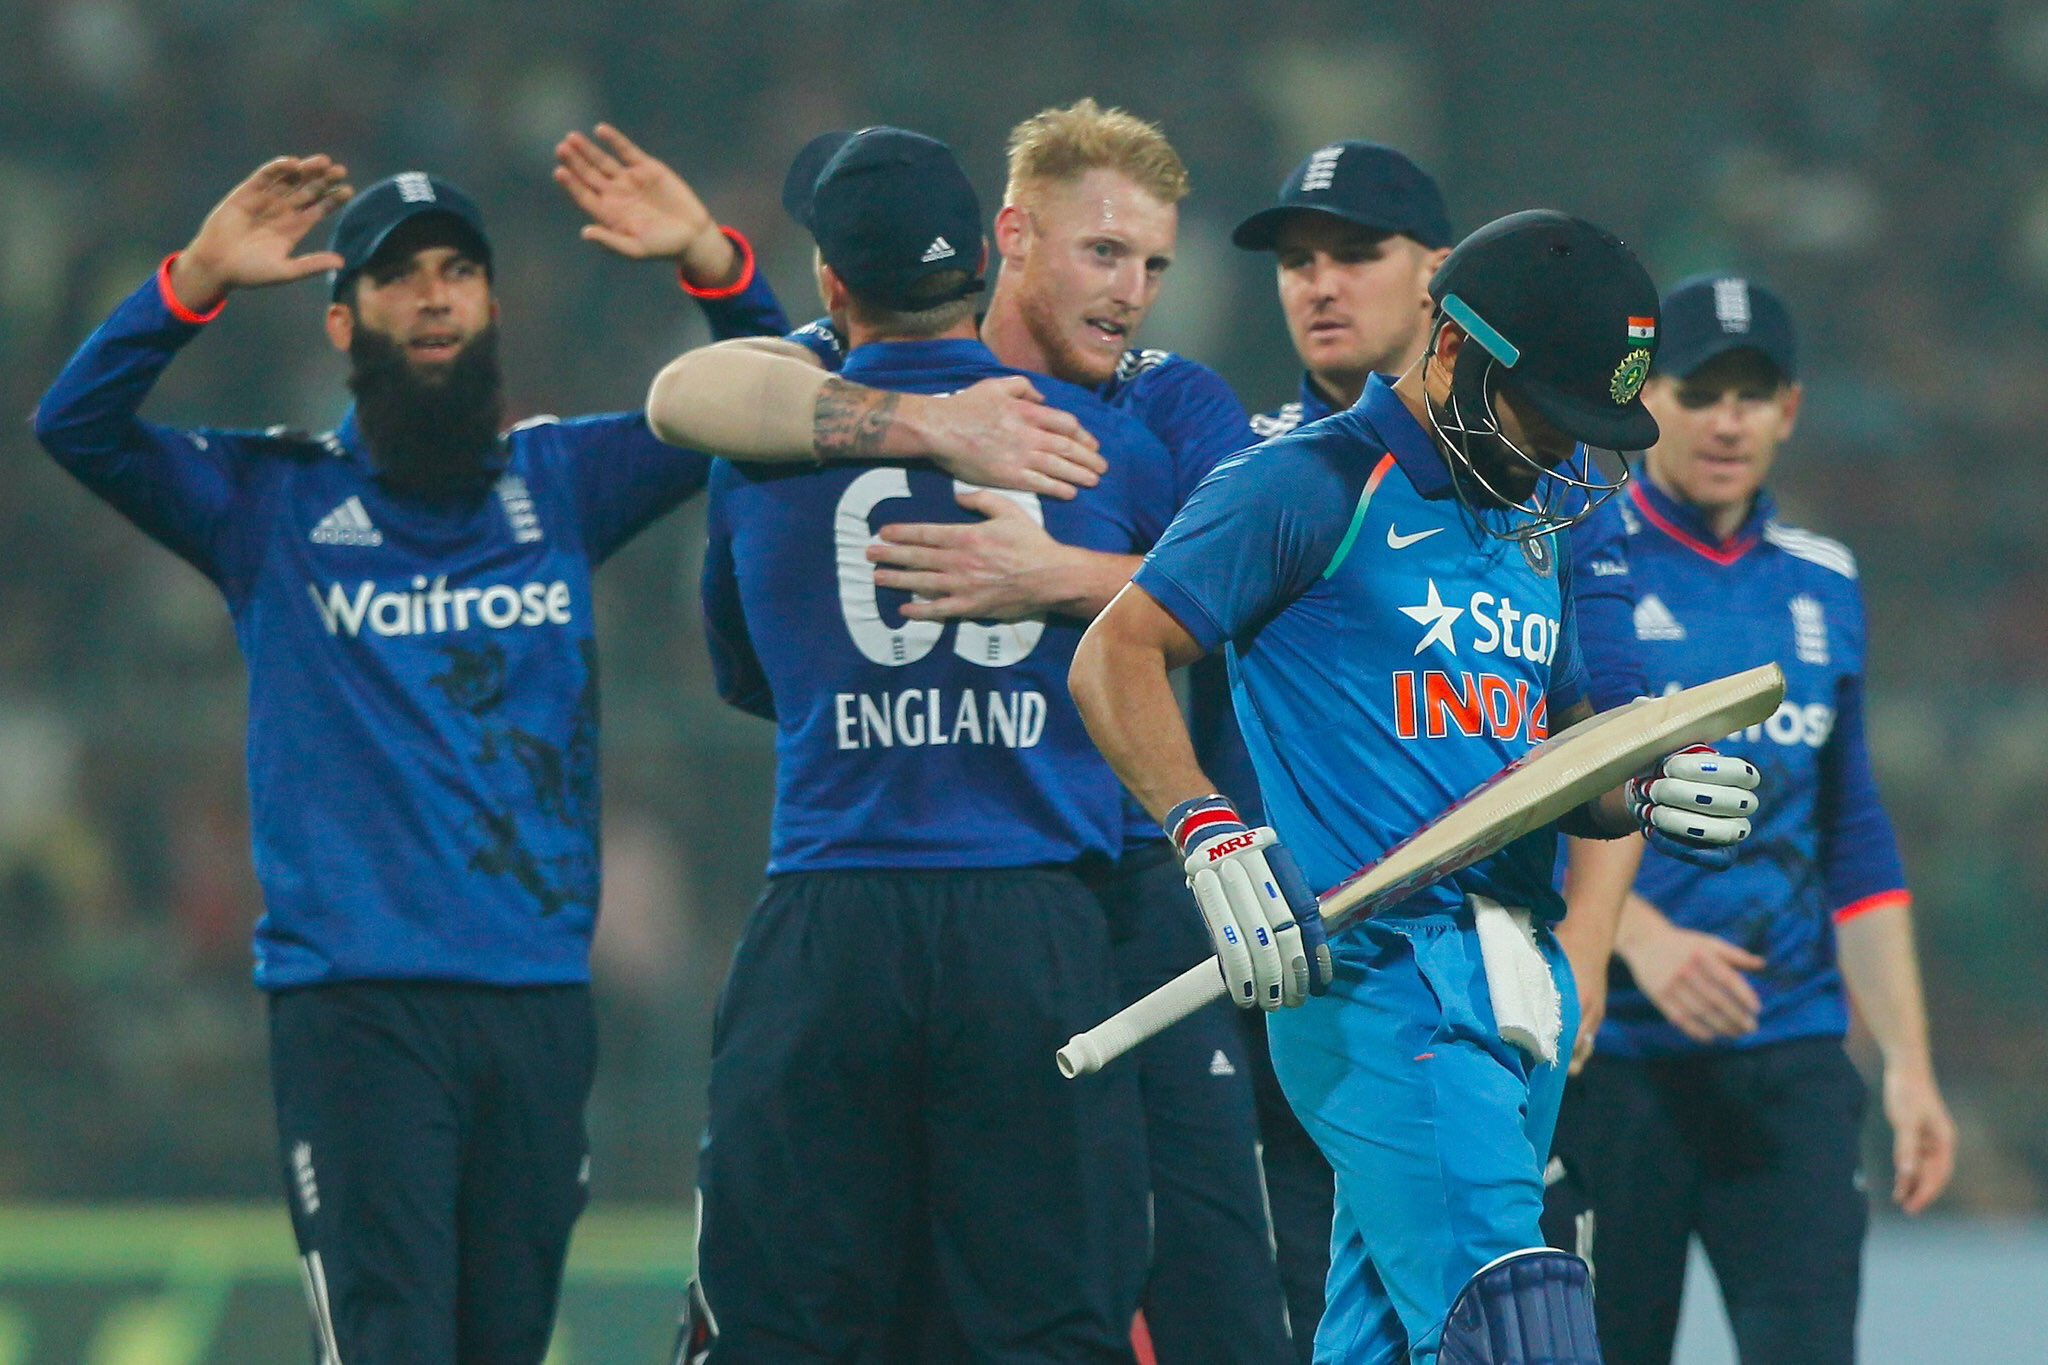 India vs England 3rd T20I: With Eyes on Series Win, Both the Teams Will Put Their Best Efforts in Final Game